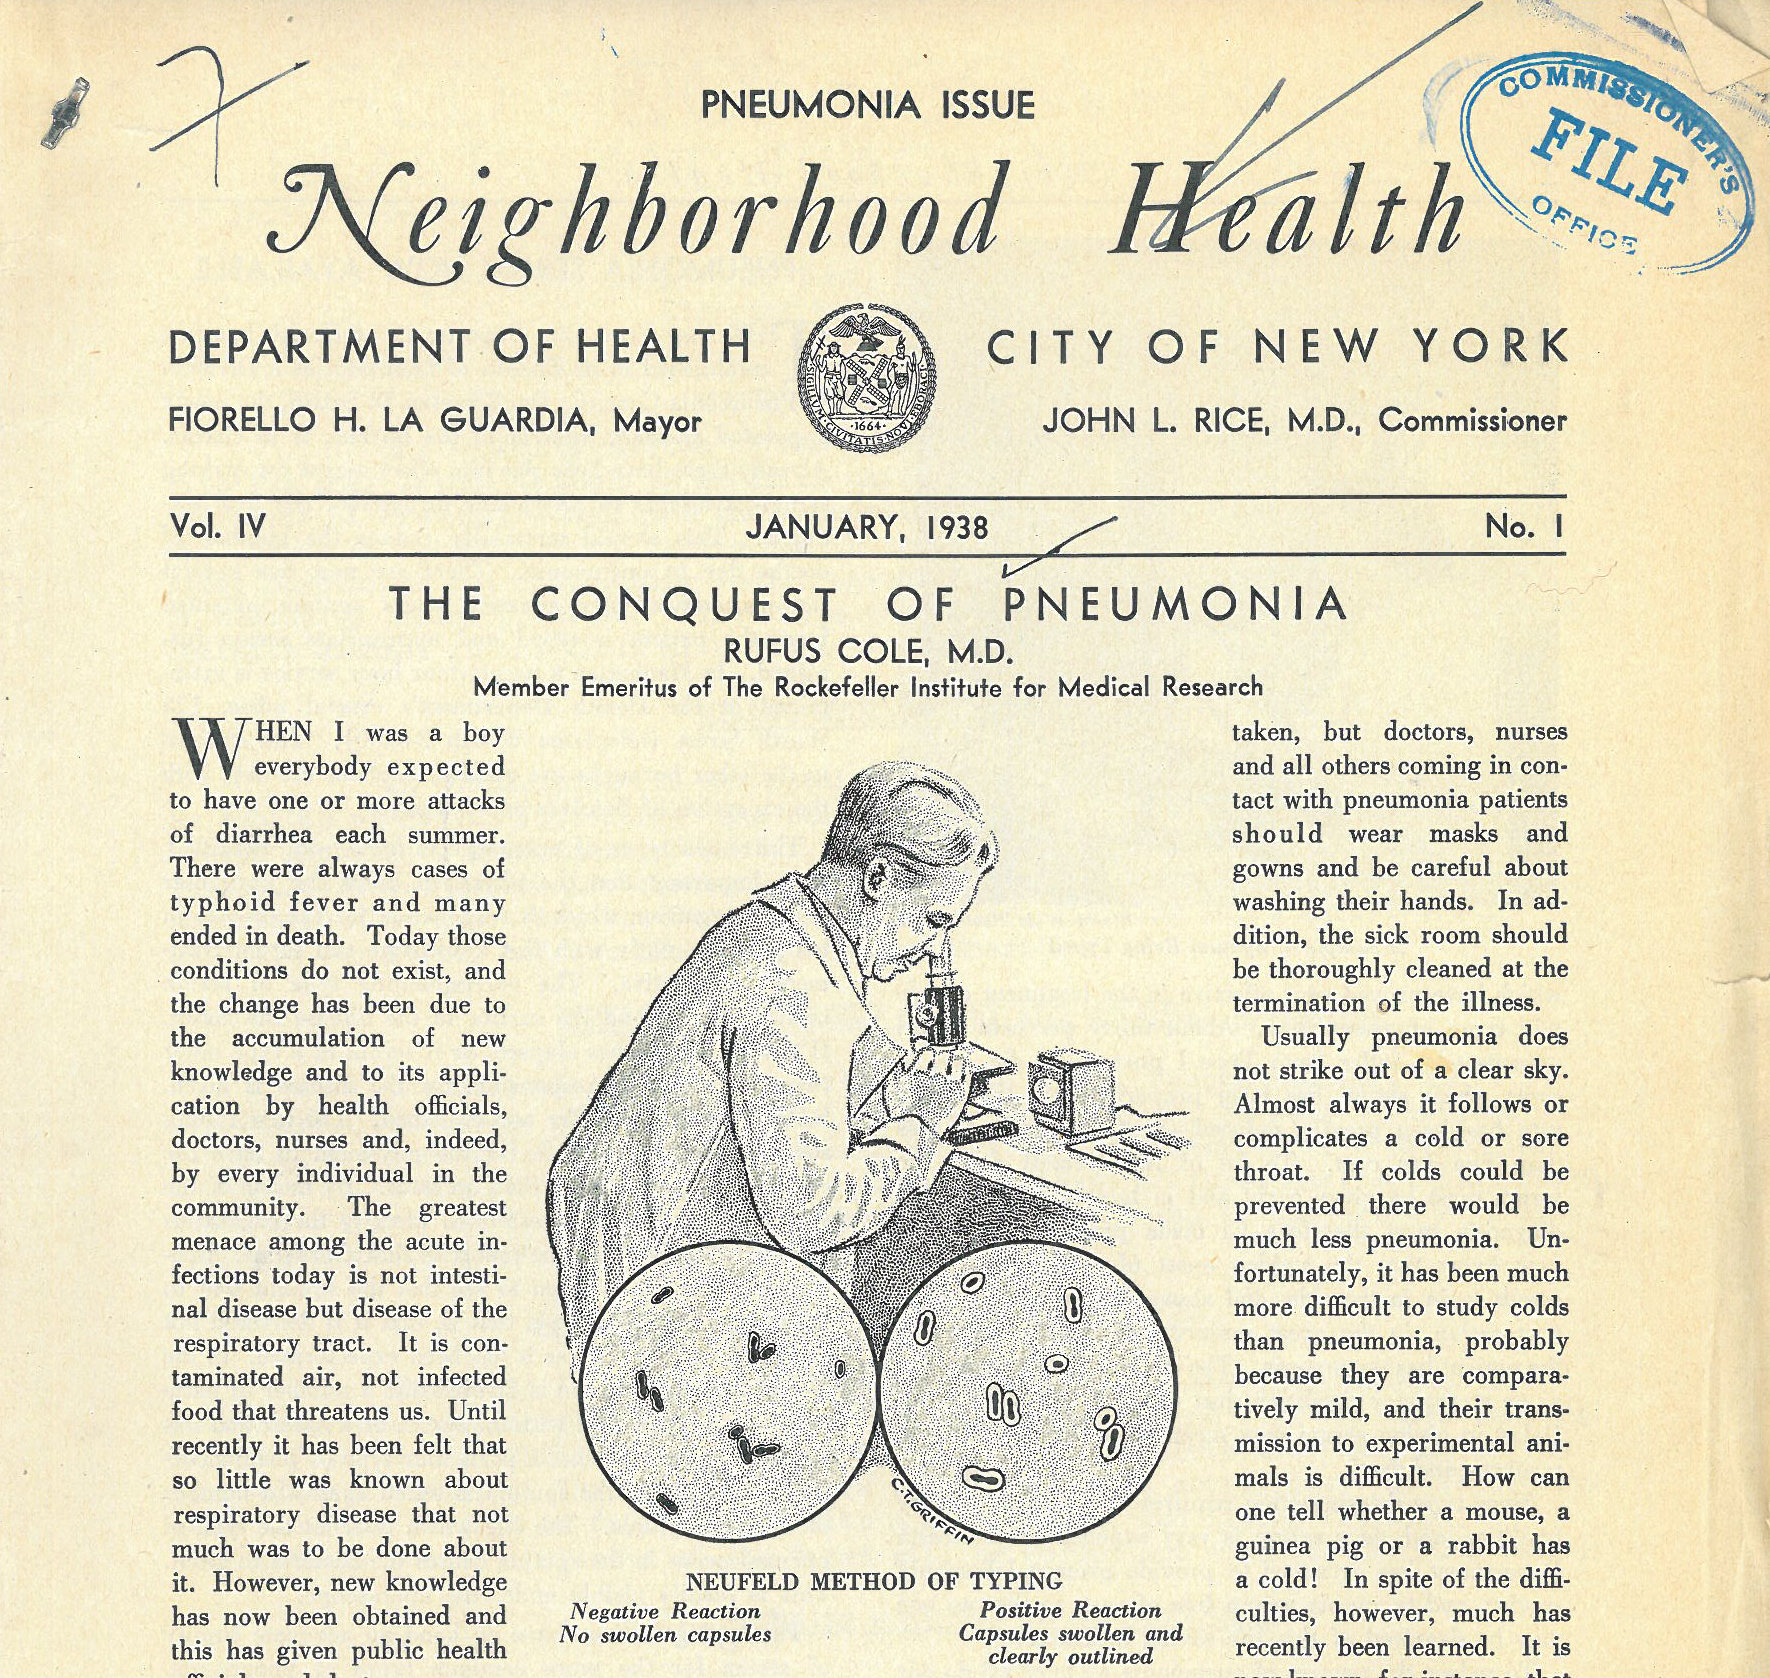 A newsletter produced by the Department of Health. Each newsletter focused on a specific health issue, in this case, pneumonia.